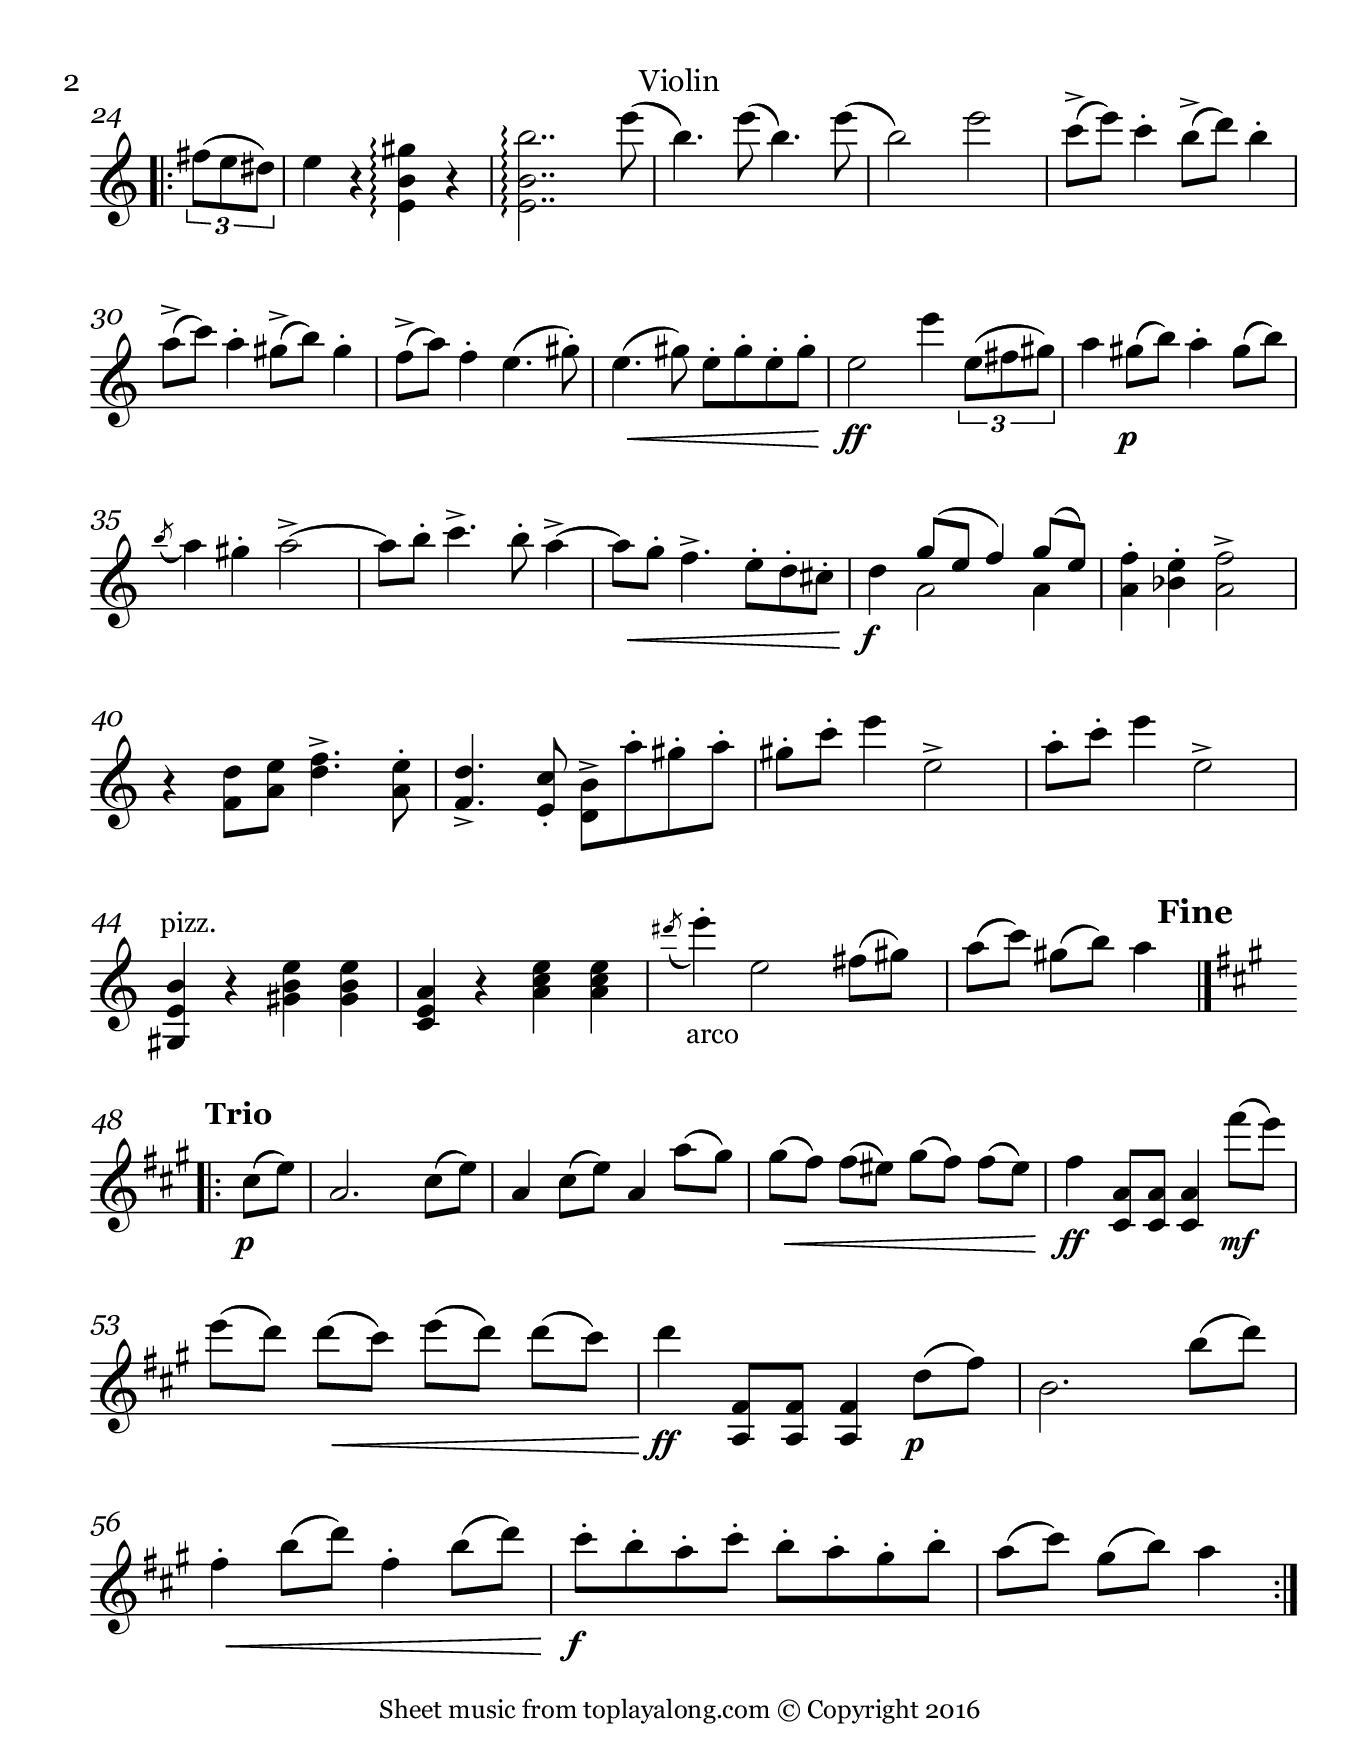 Hungarian March from Faust by Berlioz. Sheet music for Violin, page 2.